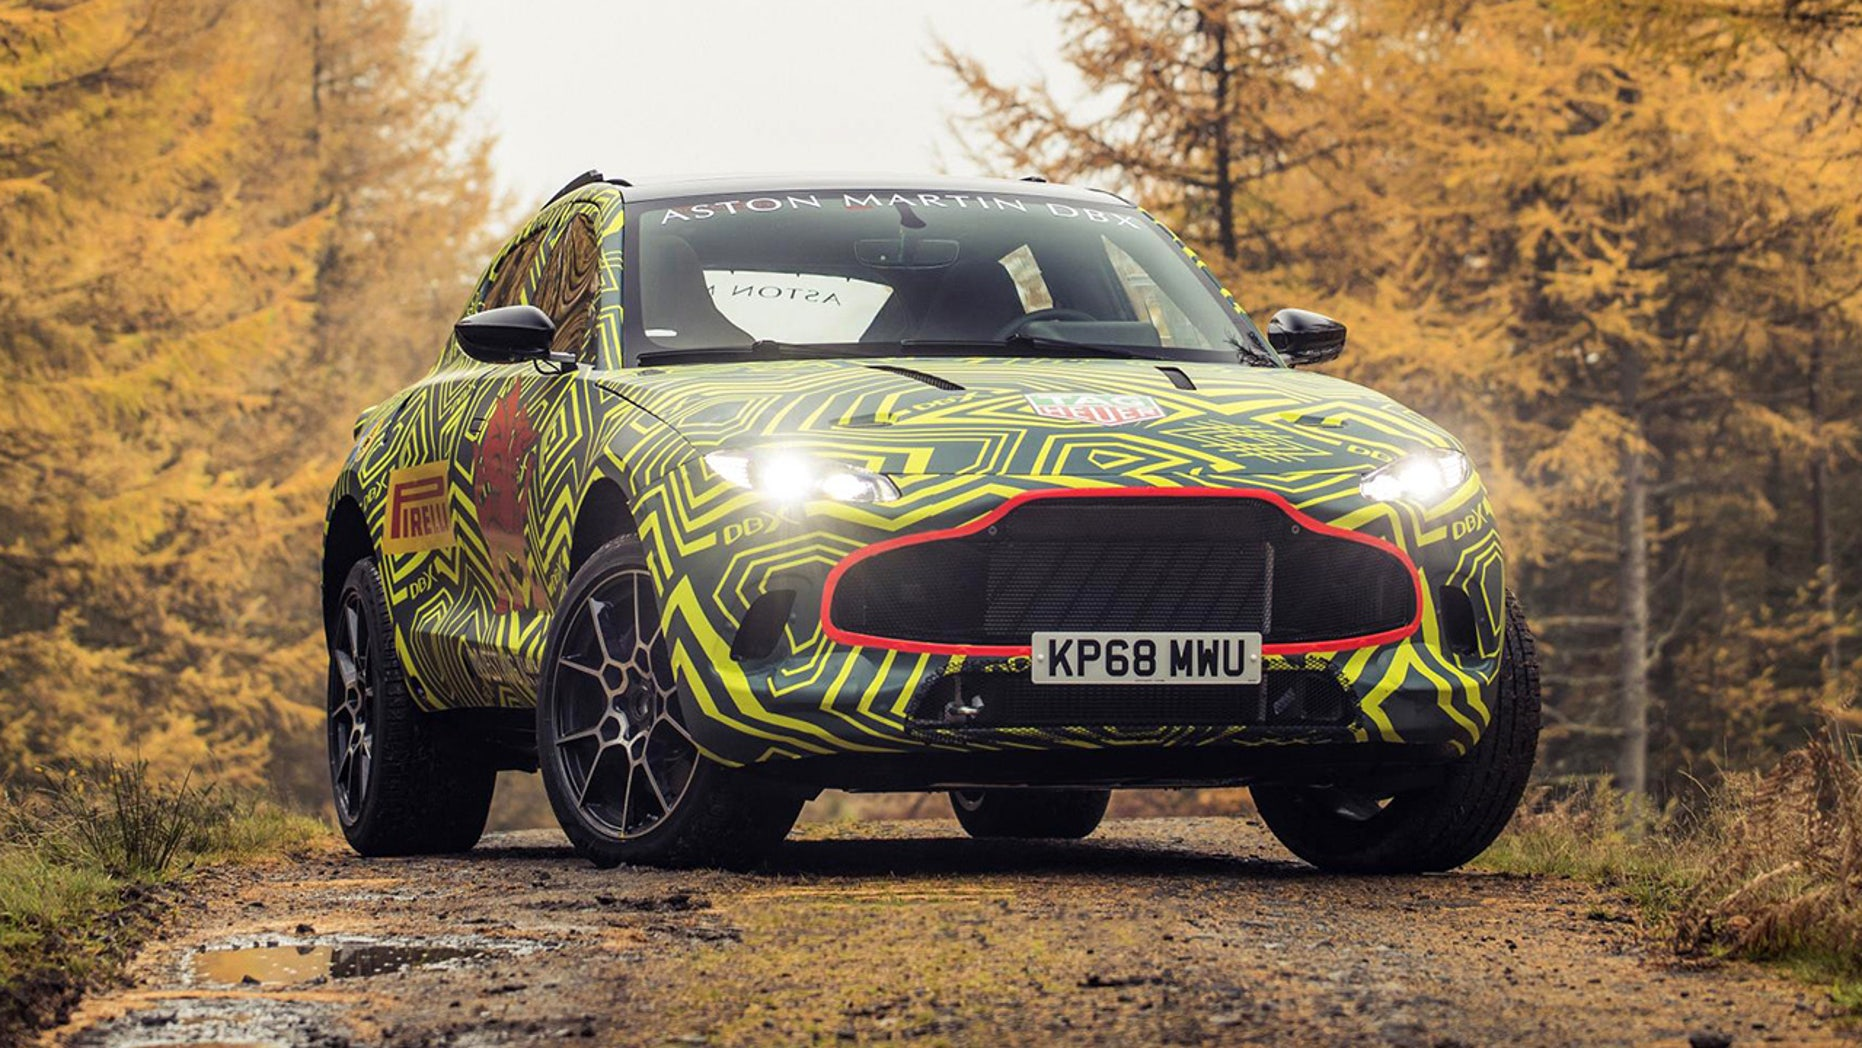 aston martin dbx is an suv fit for 007 | fox news